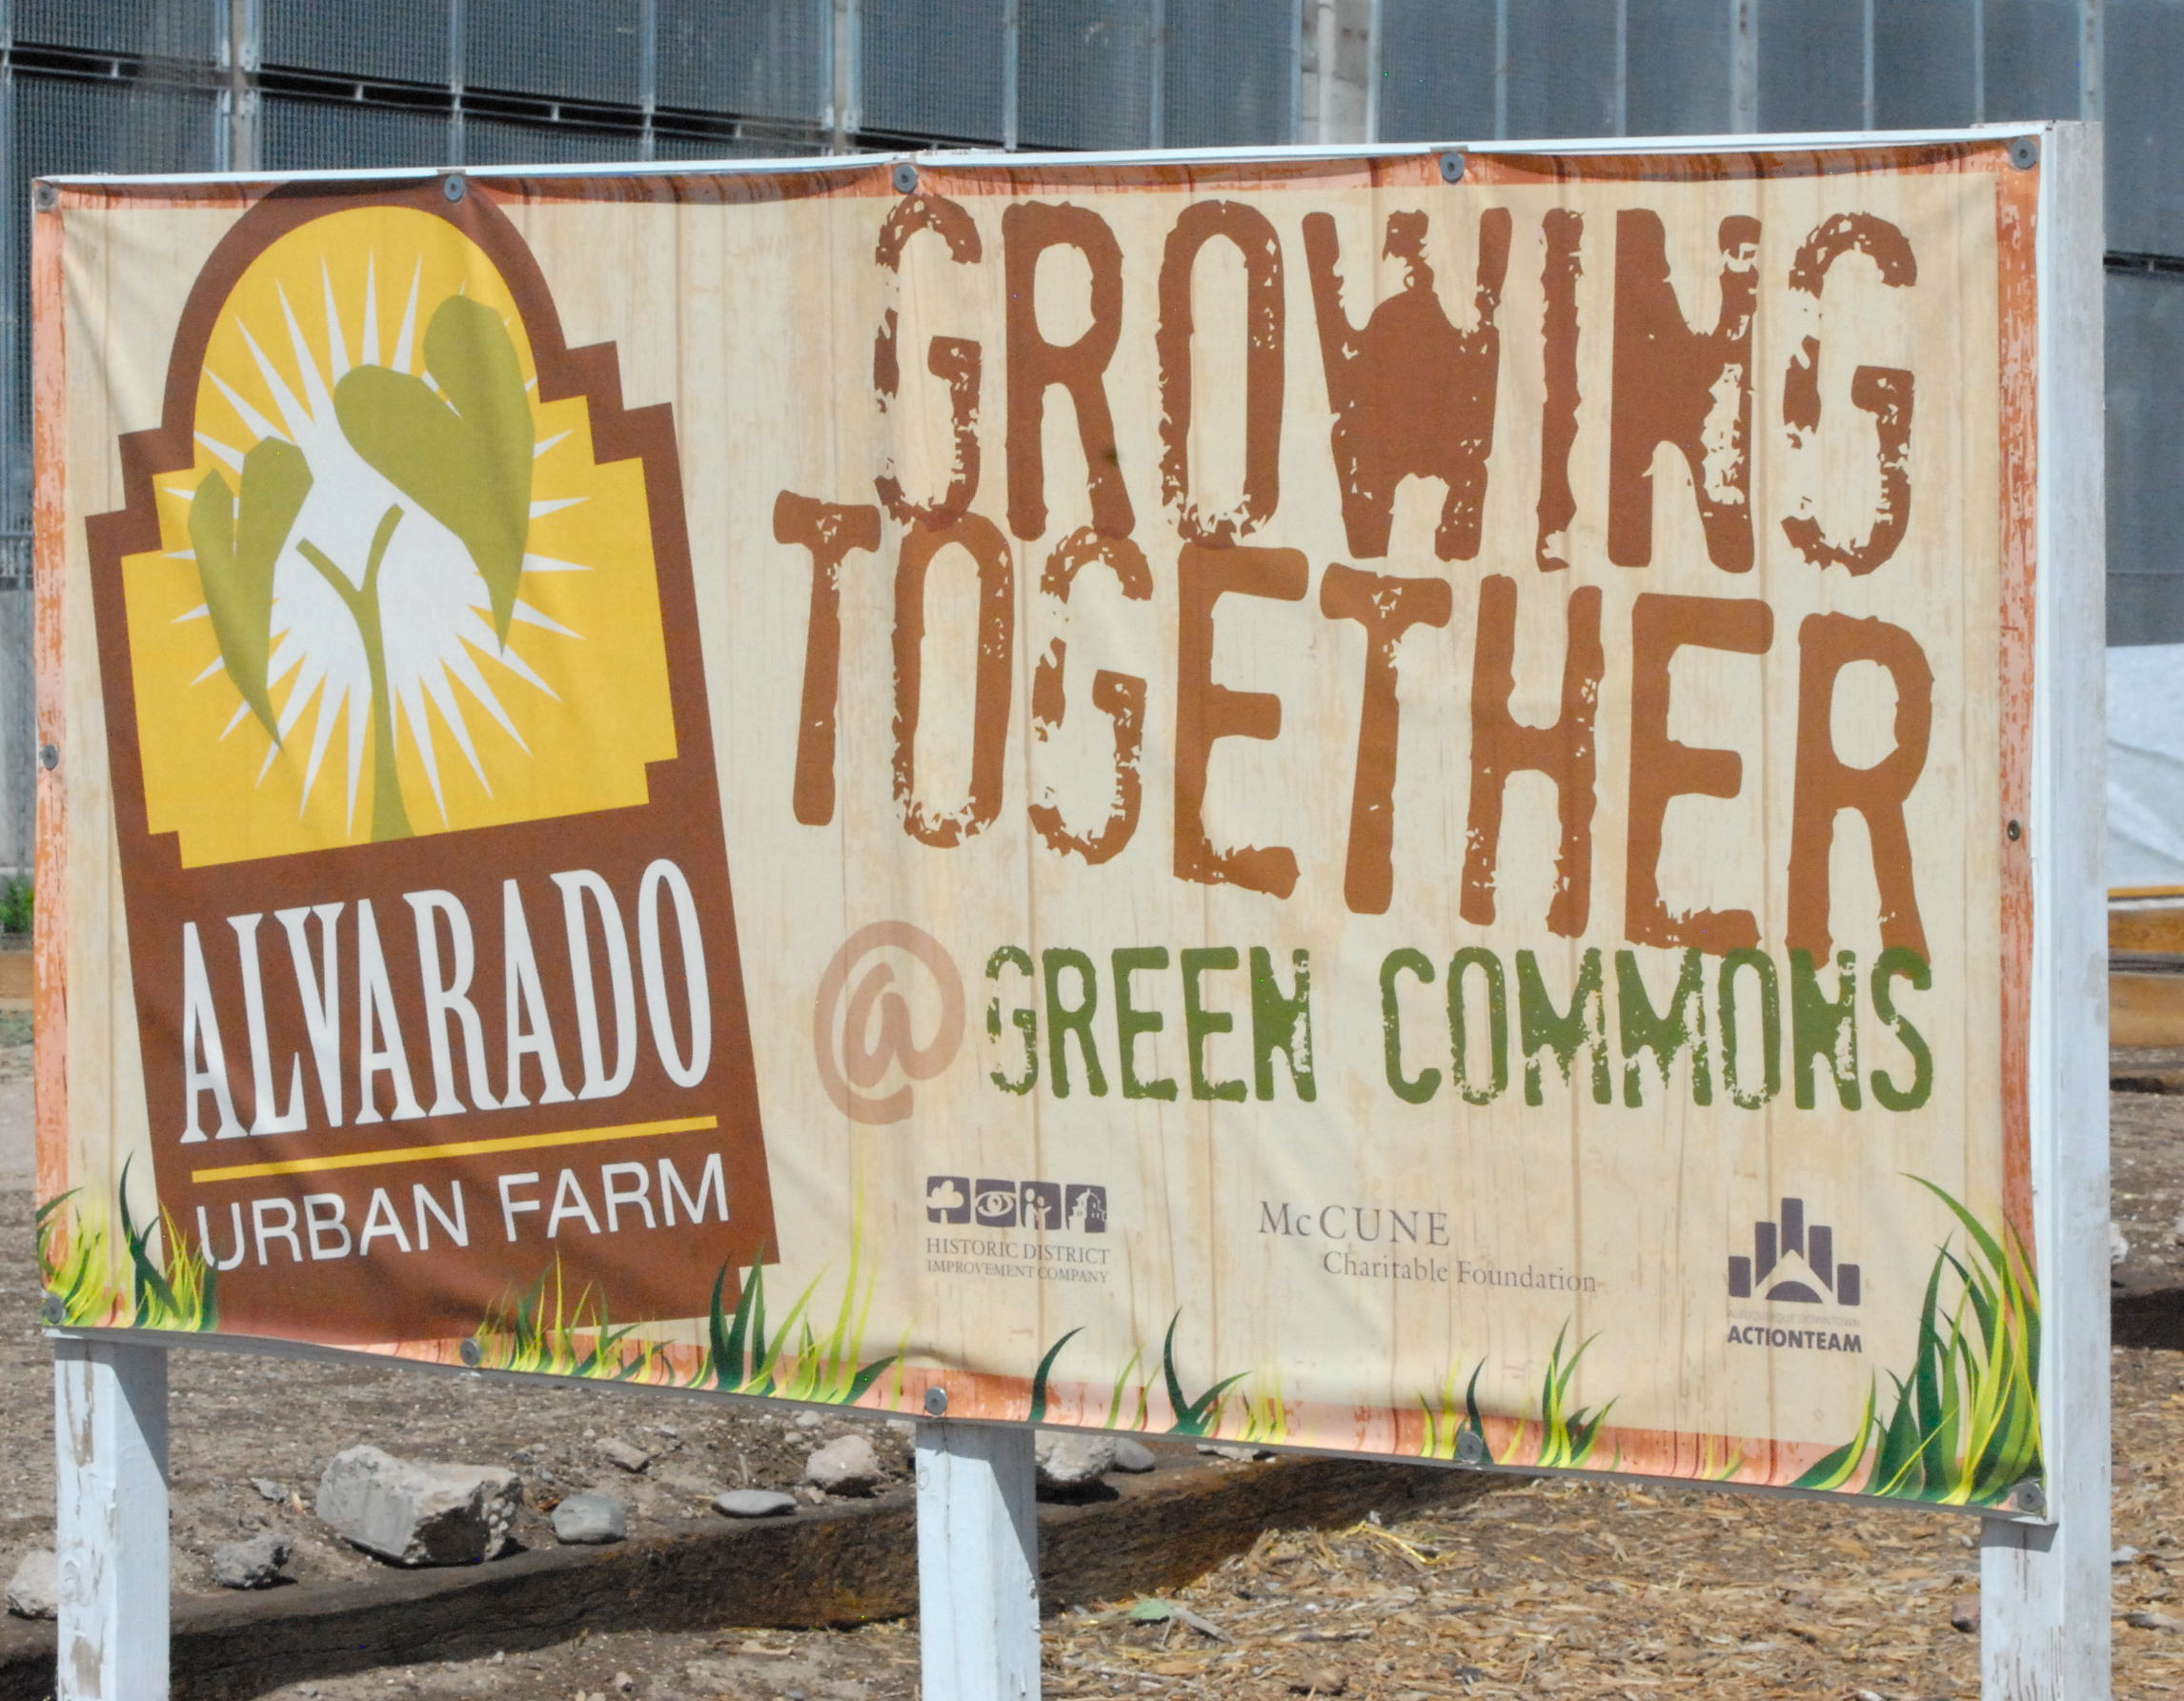 Alvarado Urban Farm